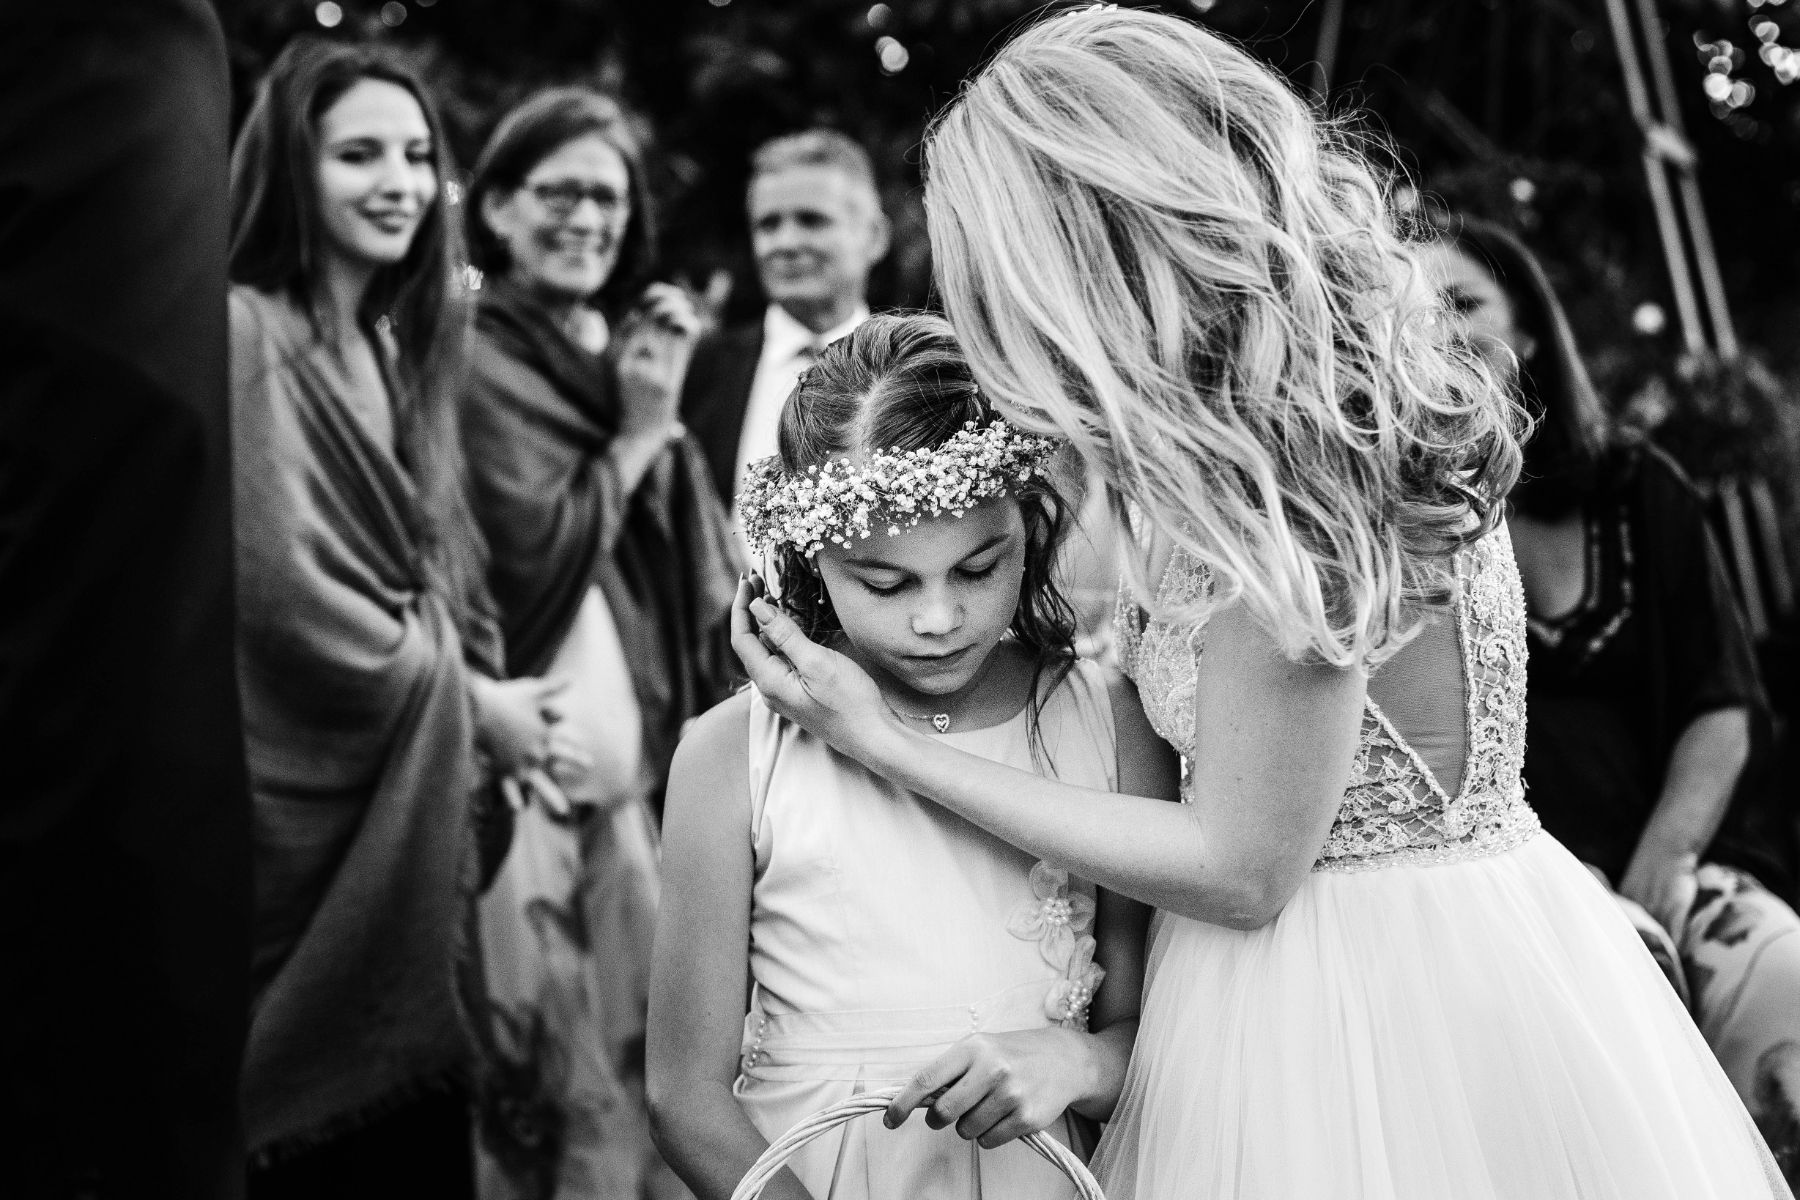 Documentary style black and white image of modern bride comforting young flower girl whilst wedding guests look on in admiration